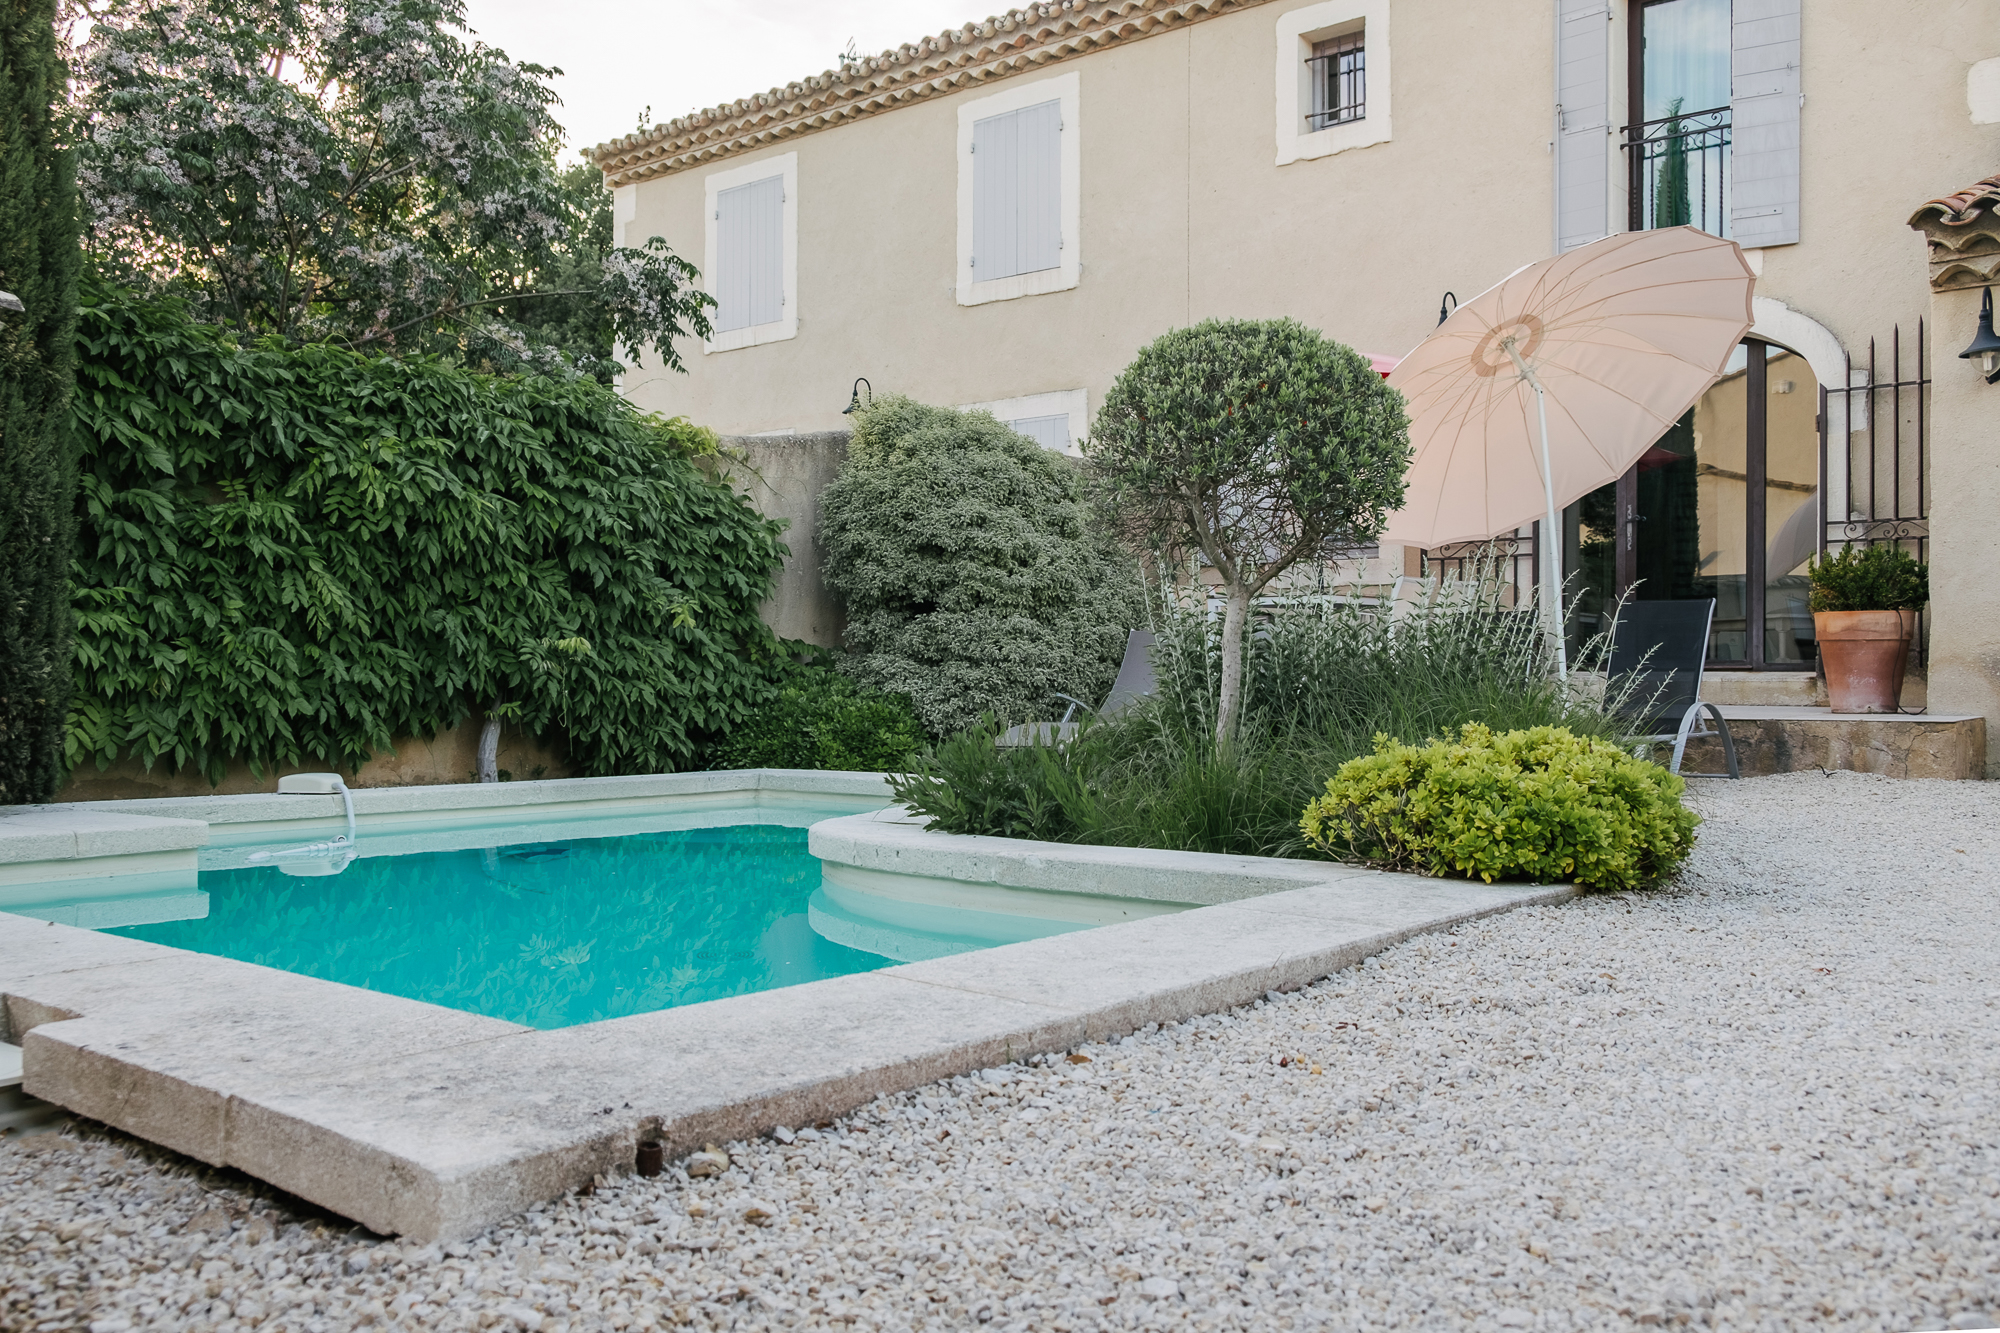 Garden house Buis Mititia residence Provence